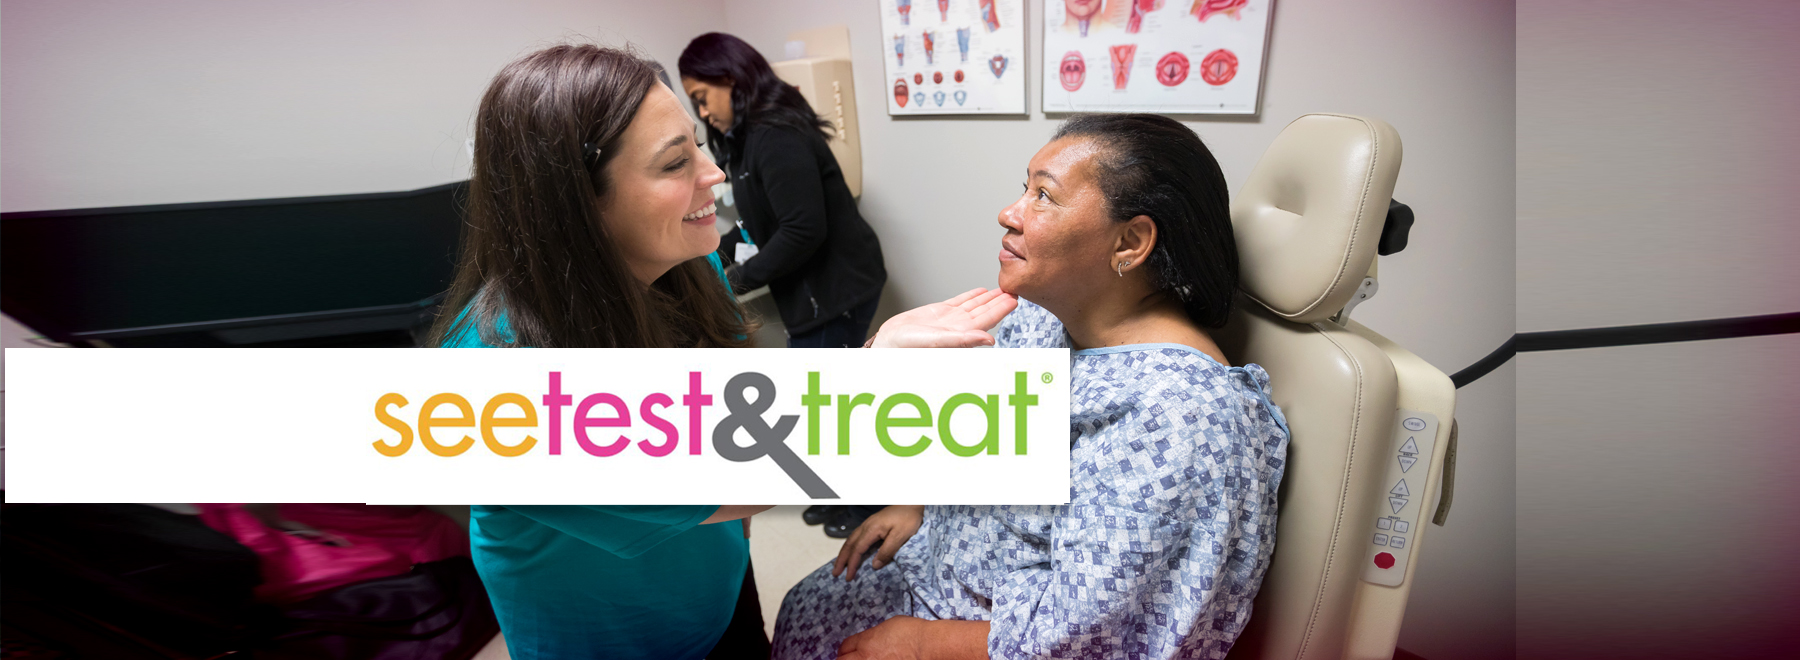 Free screenings can help detect, deter cervical, breast